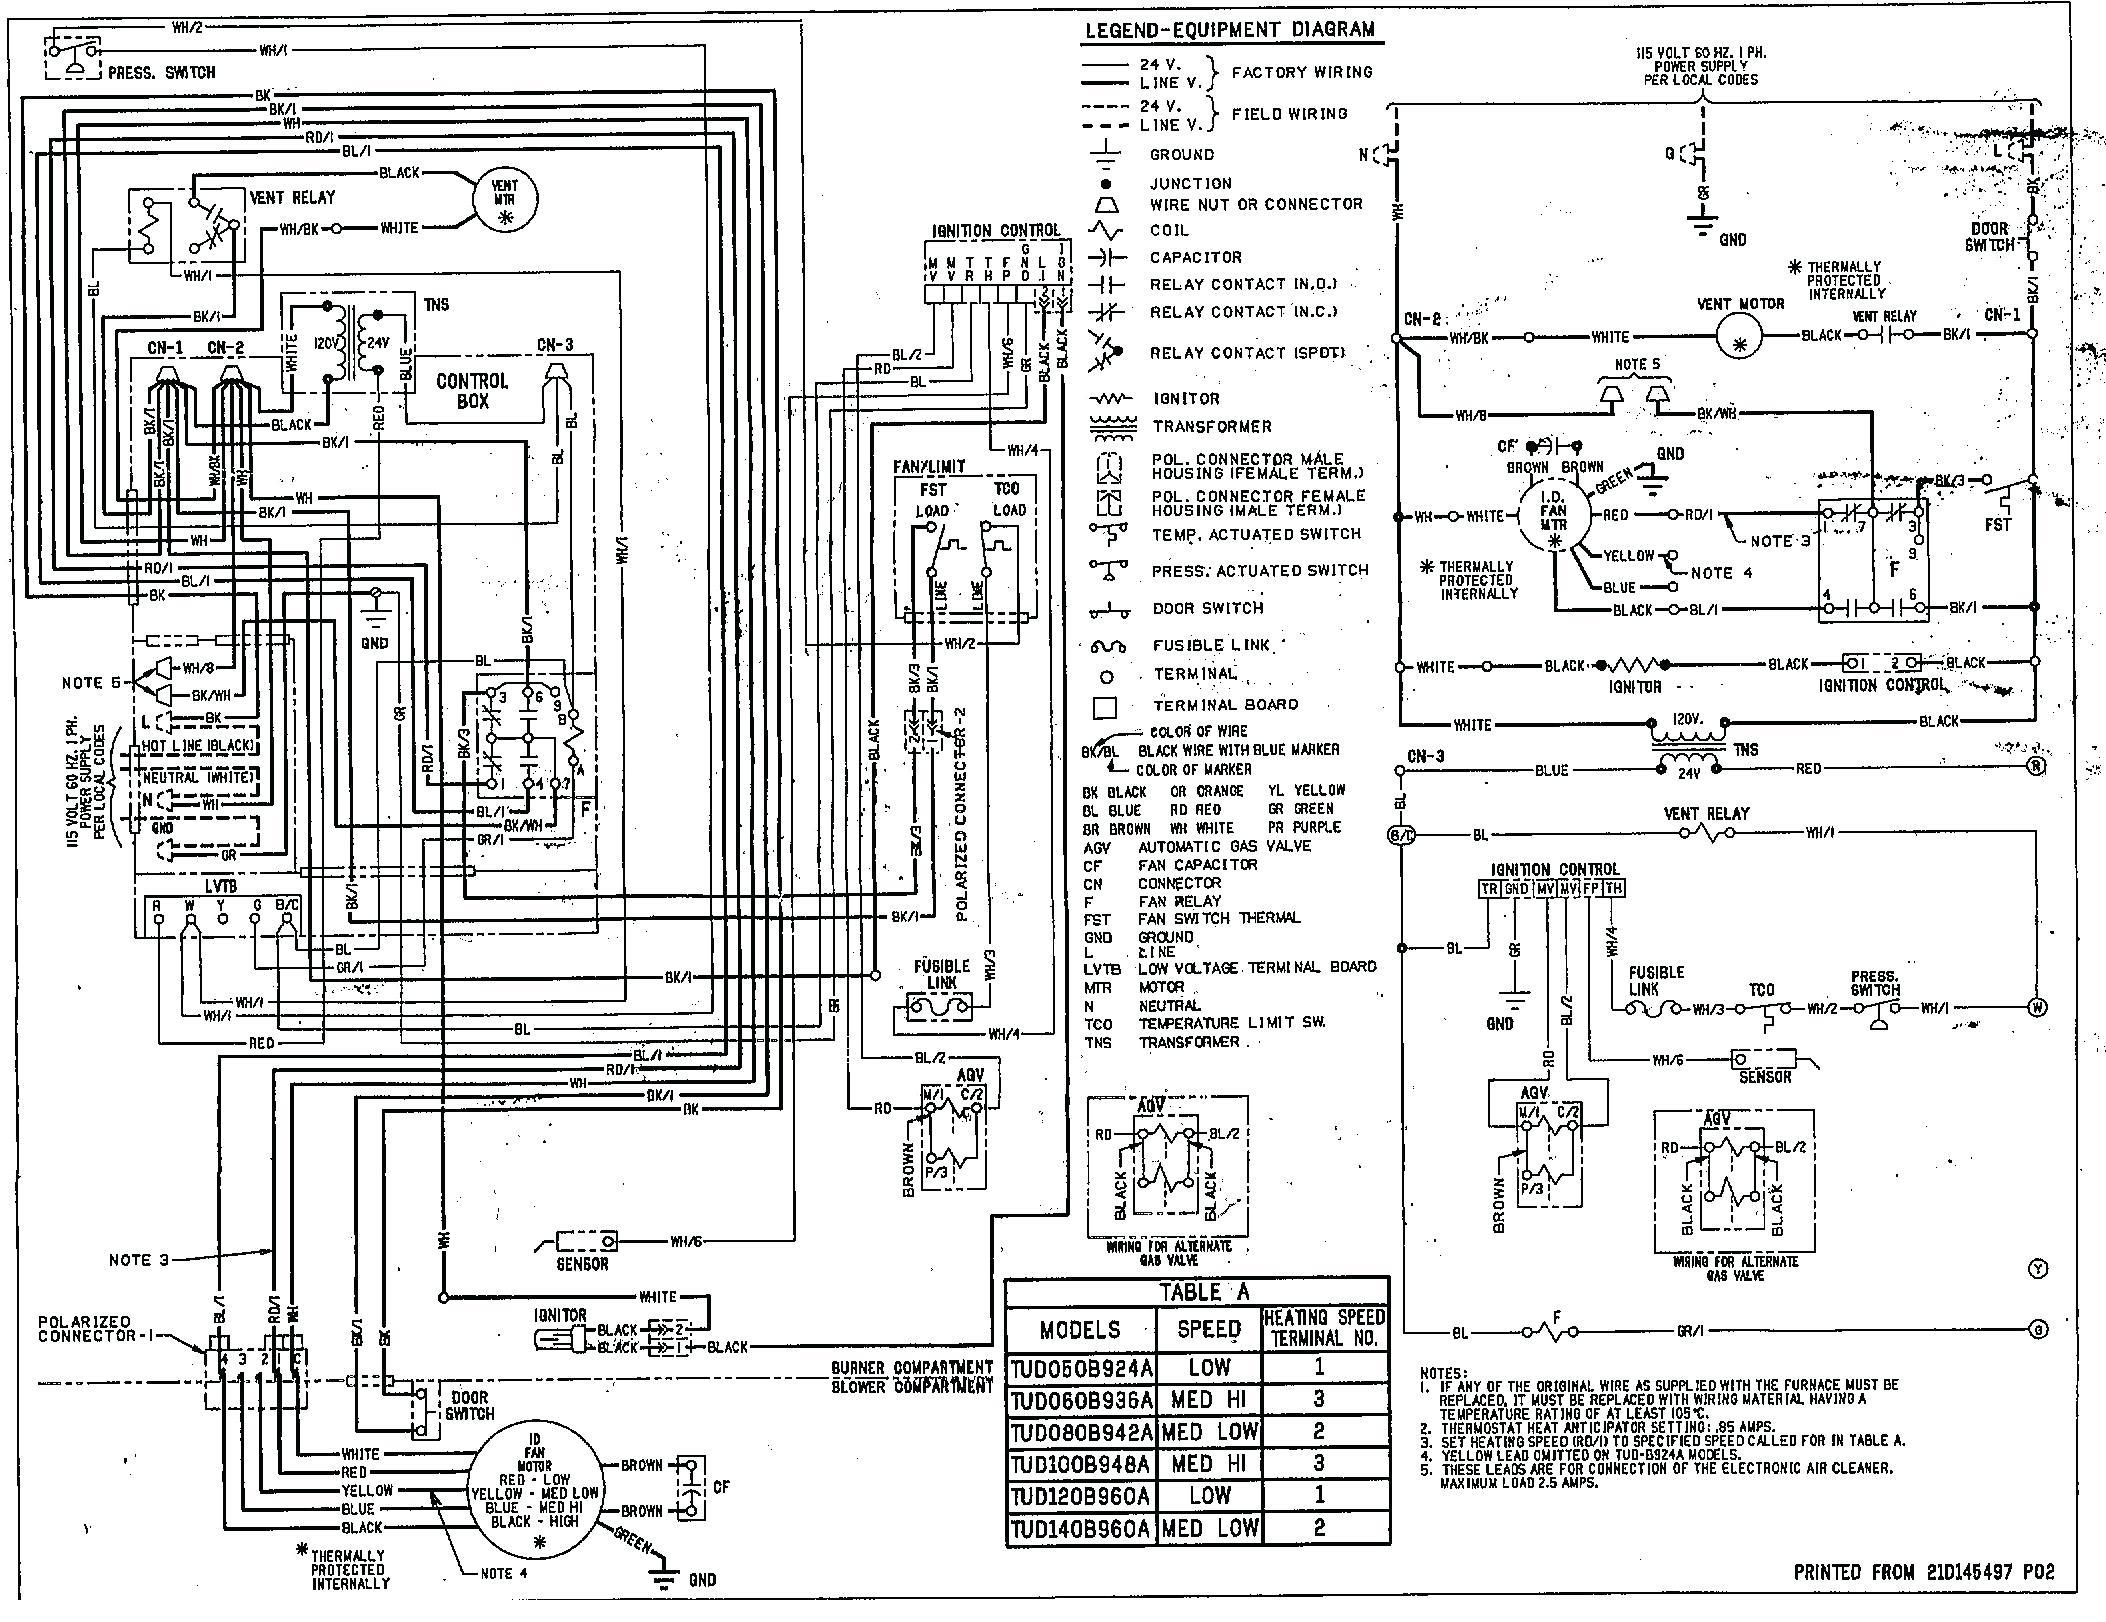 diagram] honda xl80 wiring diagram full version hd quality wiring diagram -  hpvdiagrams.argiso.it  argiso.it currently does not have any sponsors for you.